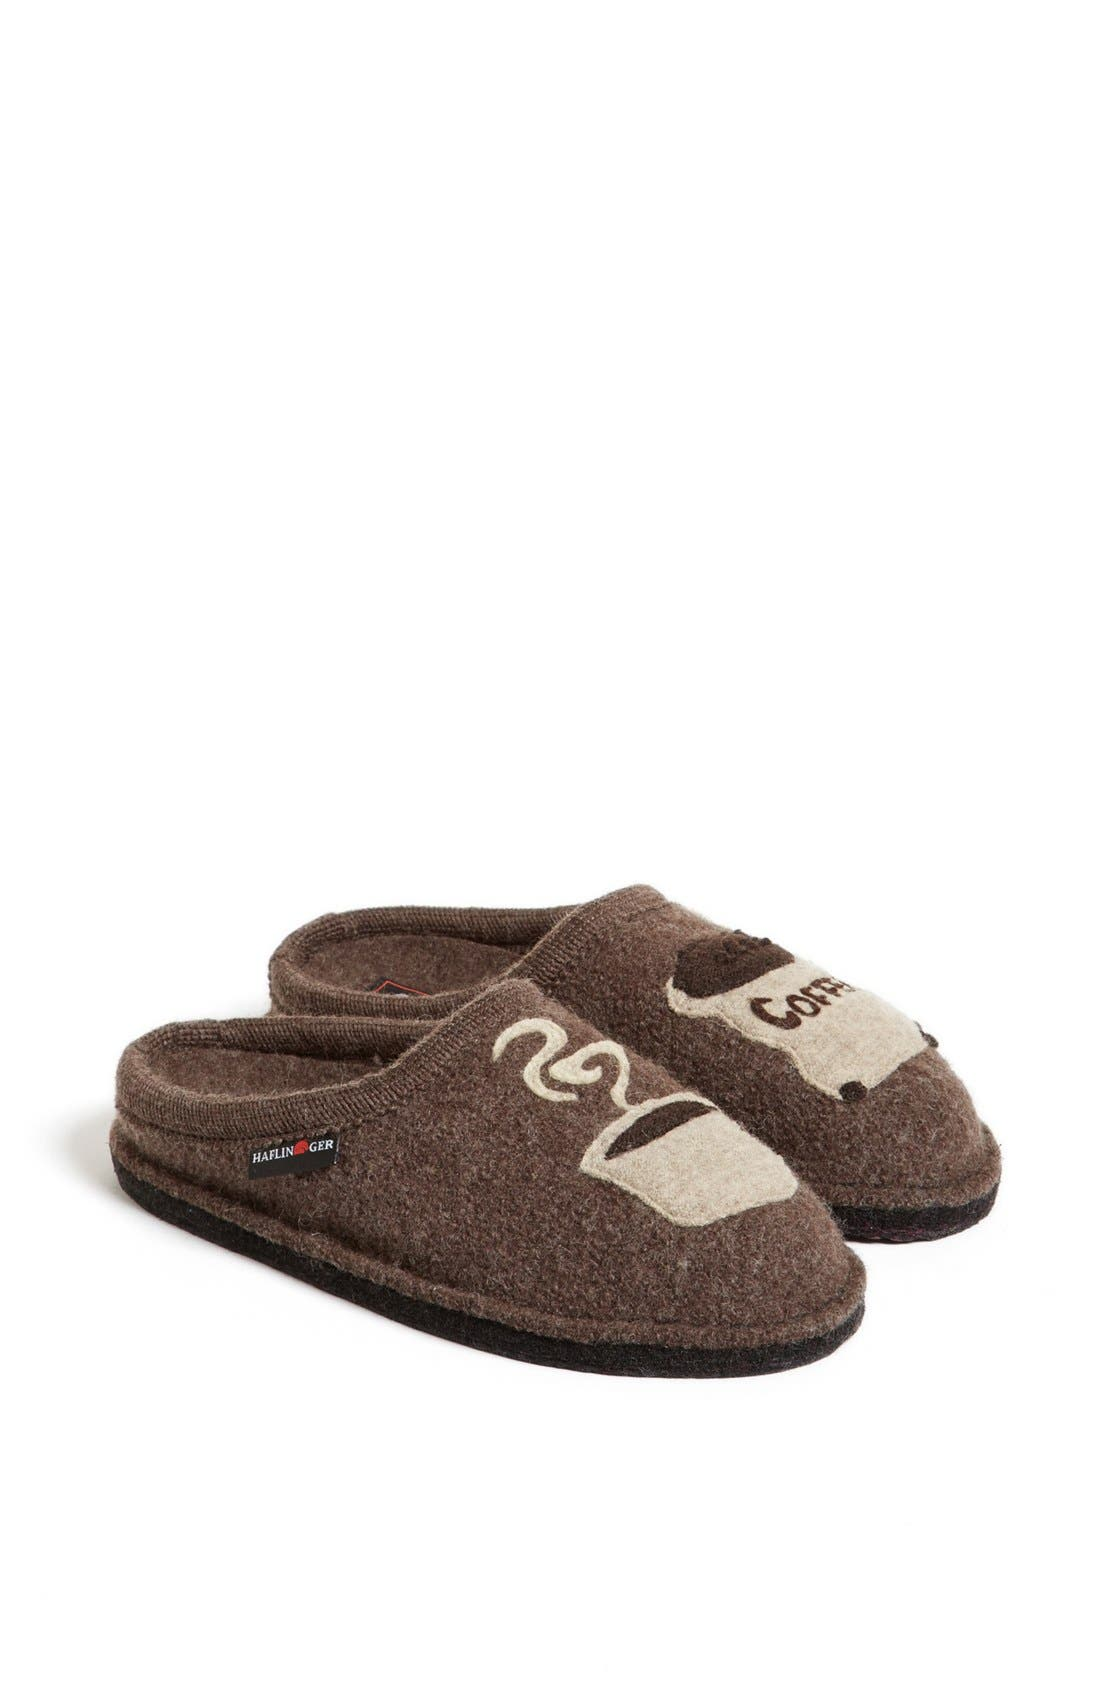 Alternate Image 1 Selected - Haflinger 'Coffee' Slipper